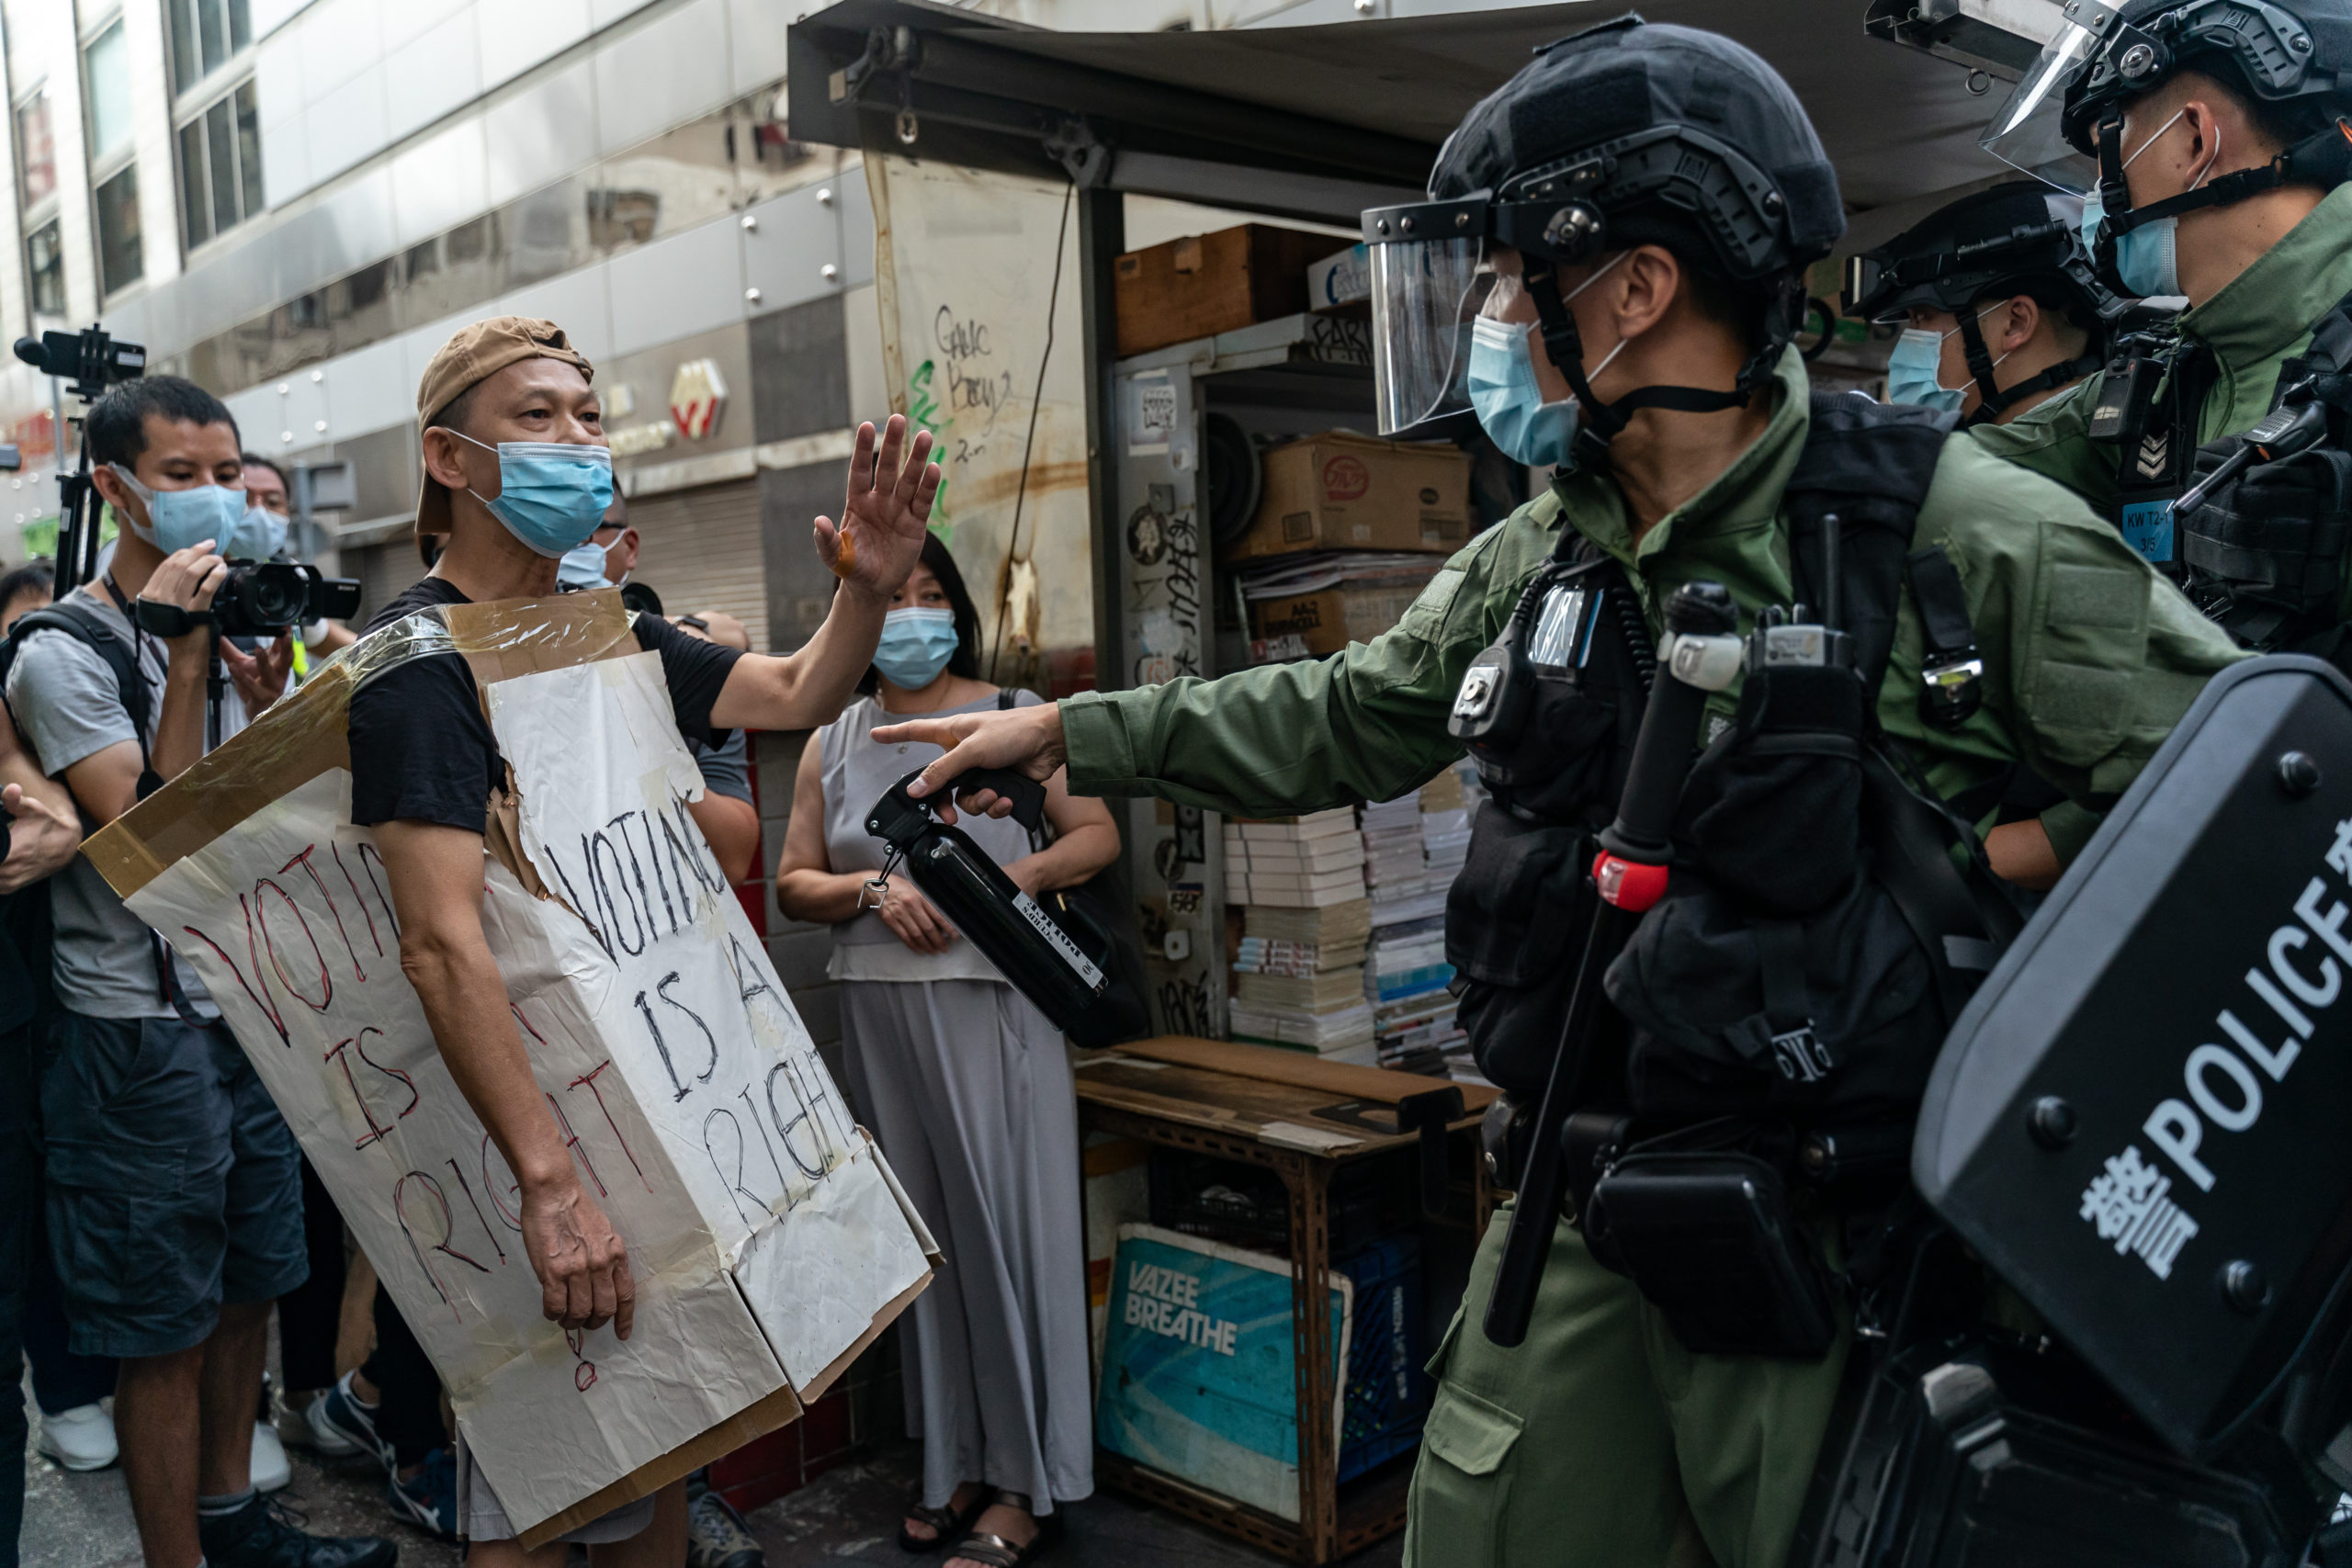 HONG KONG, CHINA - SEPTEMBER 06: A man wearing a Voting Is A Right costome stand off with riot police during an anti-government protest on September 6, 2020 in Hong Kong, China. Nearly 300 people were arrested during the protest against the government's decision to postpone the legislative council election due to the Covid-19 and the newly imposed national security law. (Photo by Anthony Kwan/Getty Images)